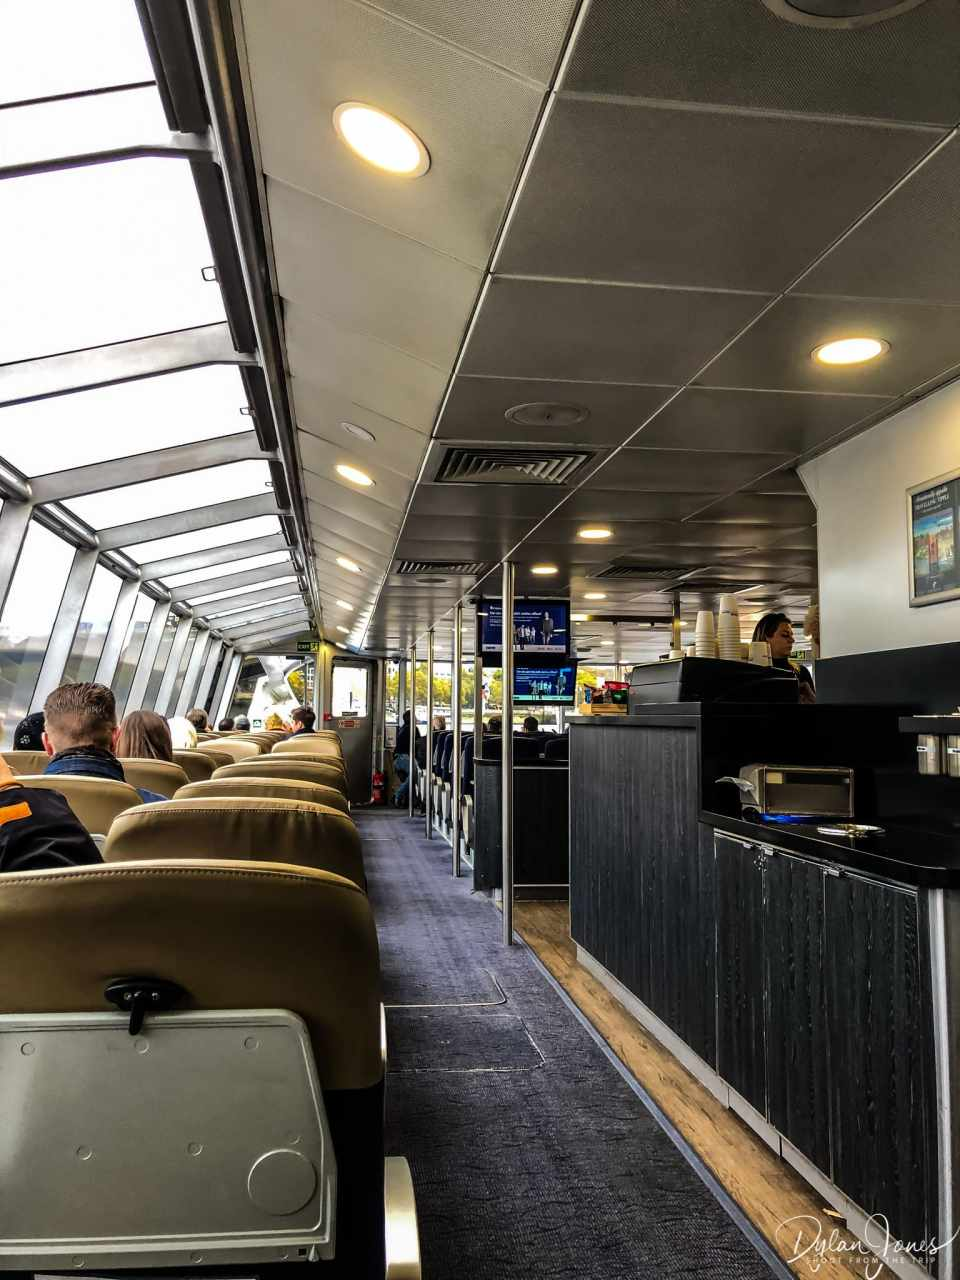 Interior of the Thames Clippers catamaran, great to see the London landmarks along the river